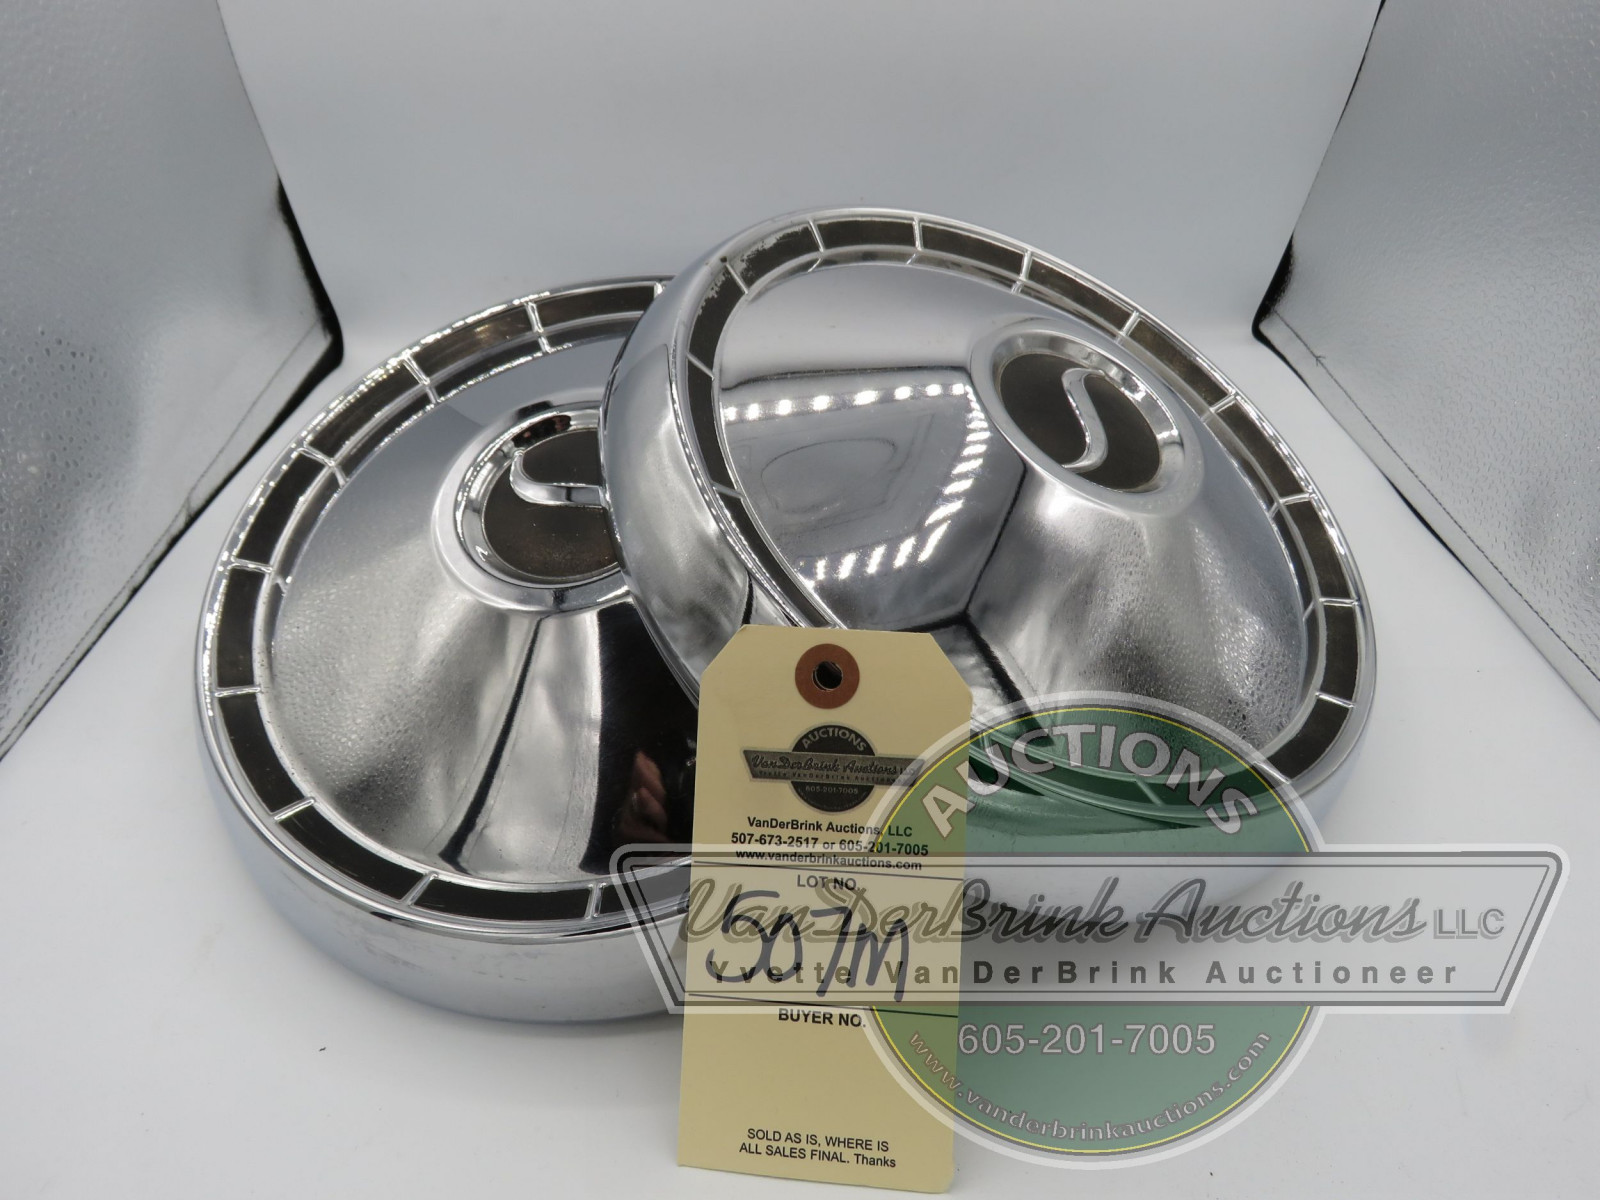 SET OF STUDEBAKER HUBCAPS - Image 1